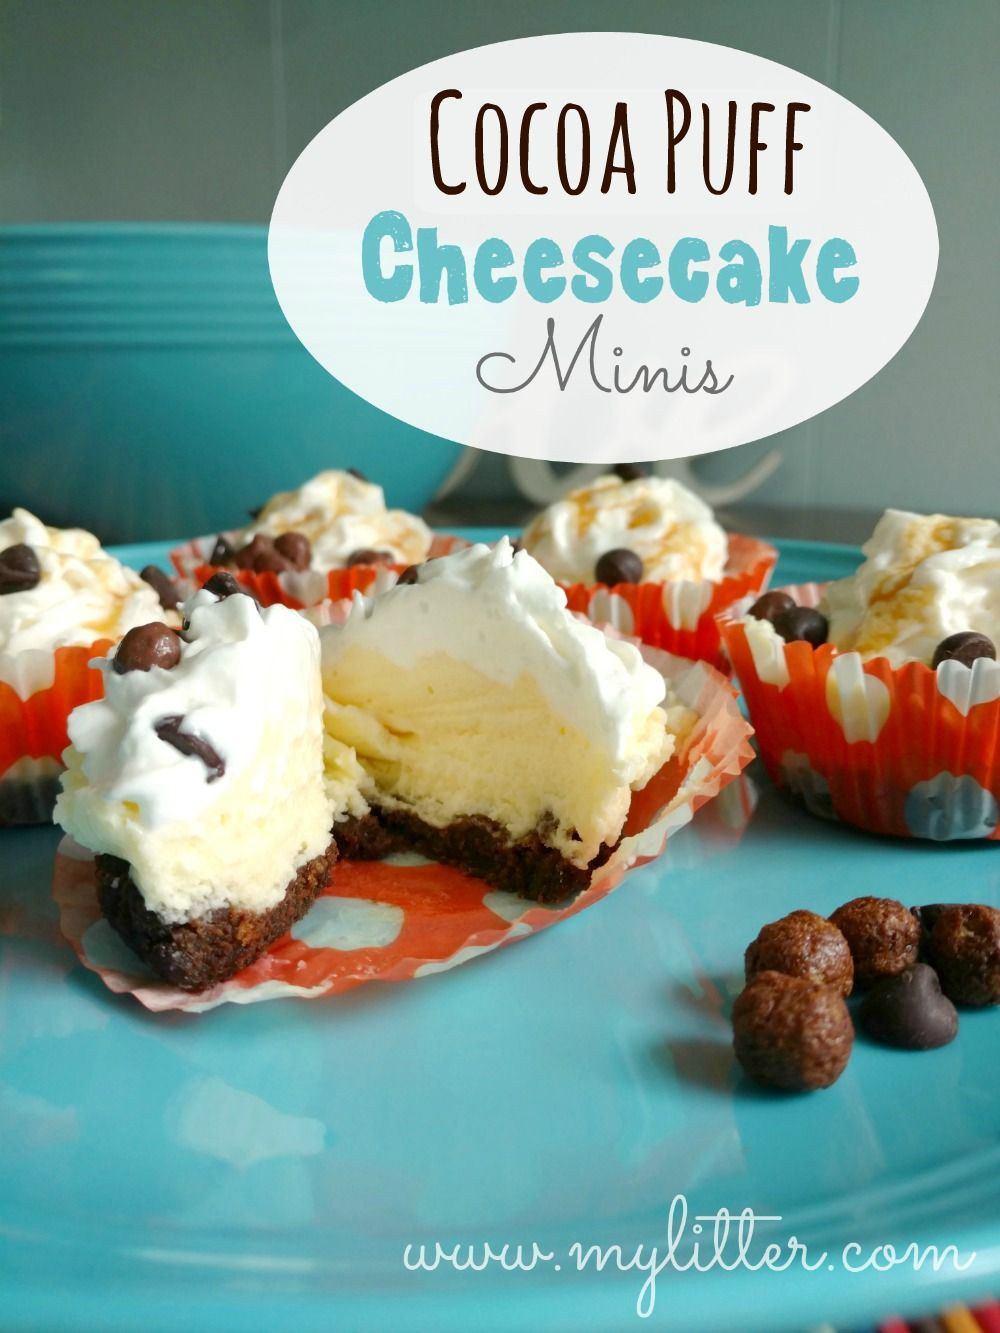 Cocoa Puff Cheesecake Minis: an easy and delicious dessert with Cocoa Puff cereal that kids will love to help make! #HoneyNutCheerios #NuestroCereal AD